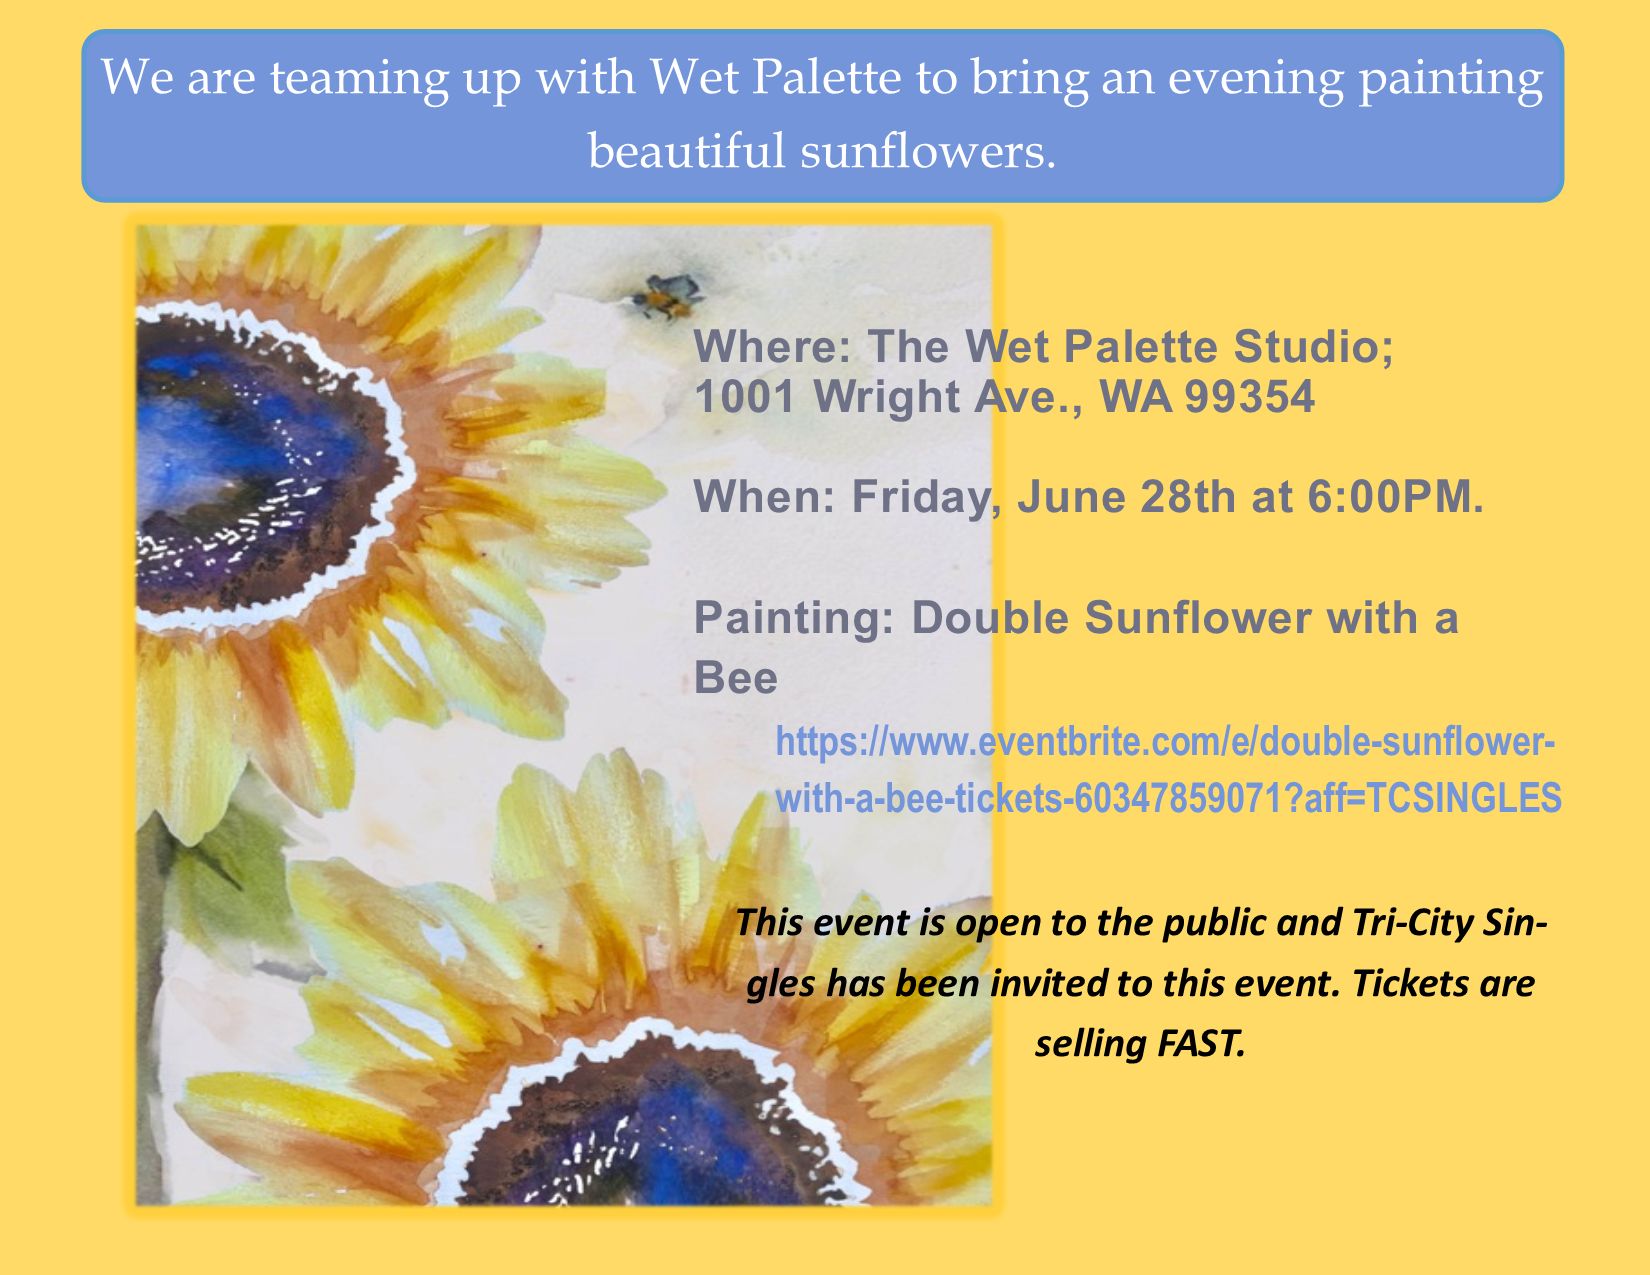 Sunflowers and Bees - We are teaming up with Wet Palette Studio to bring you an evening of painting.Food and drinks will be available for purchase.